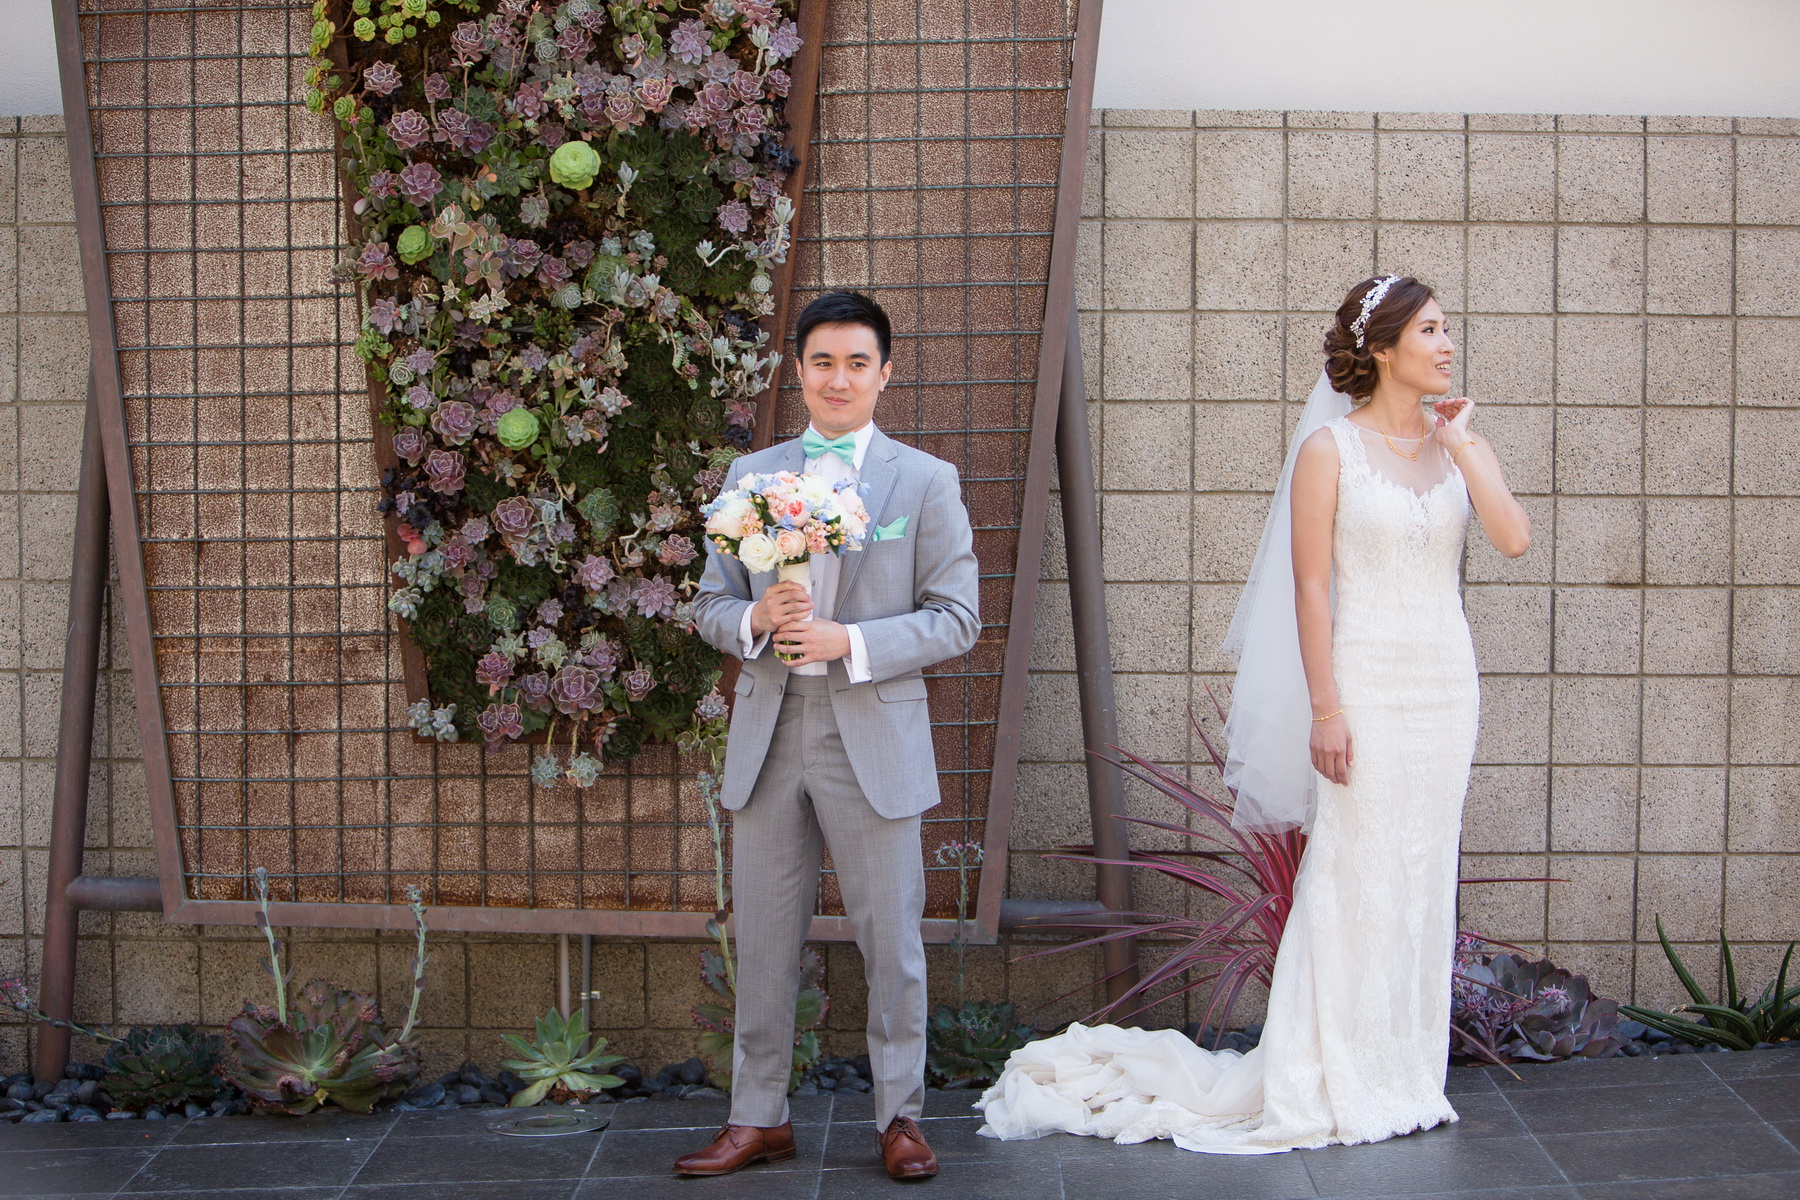 seven degrees wedding laguna beach photographer nicole caldwell bride and groom